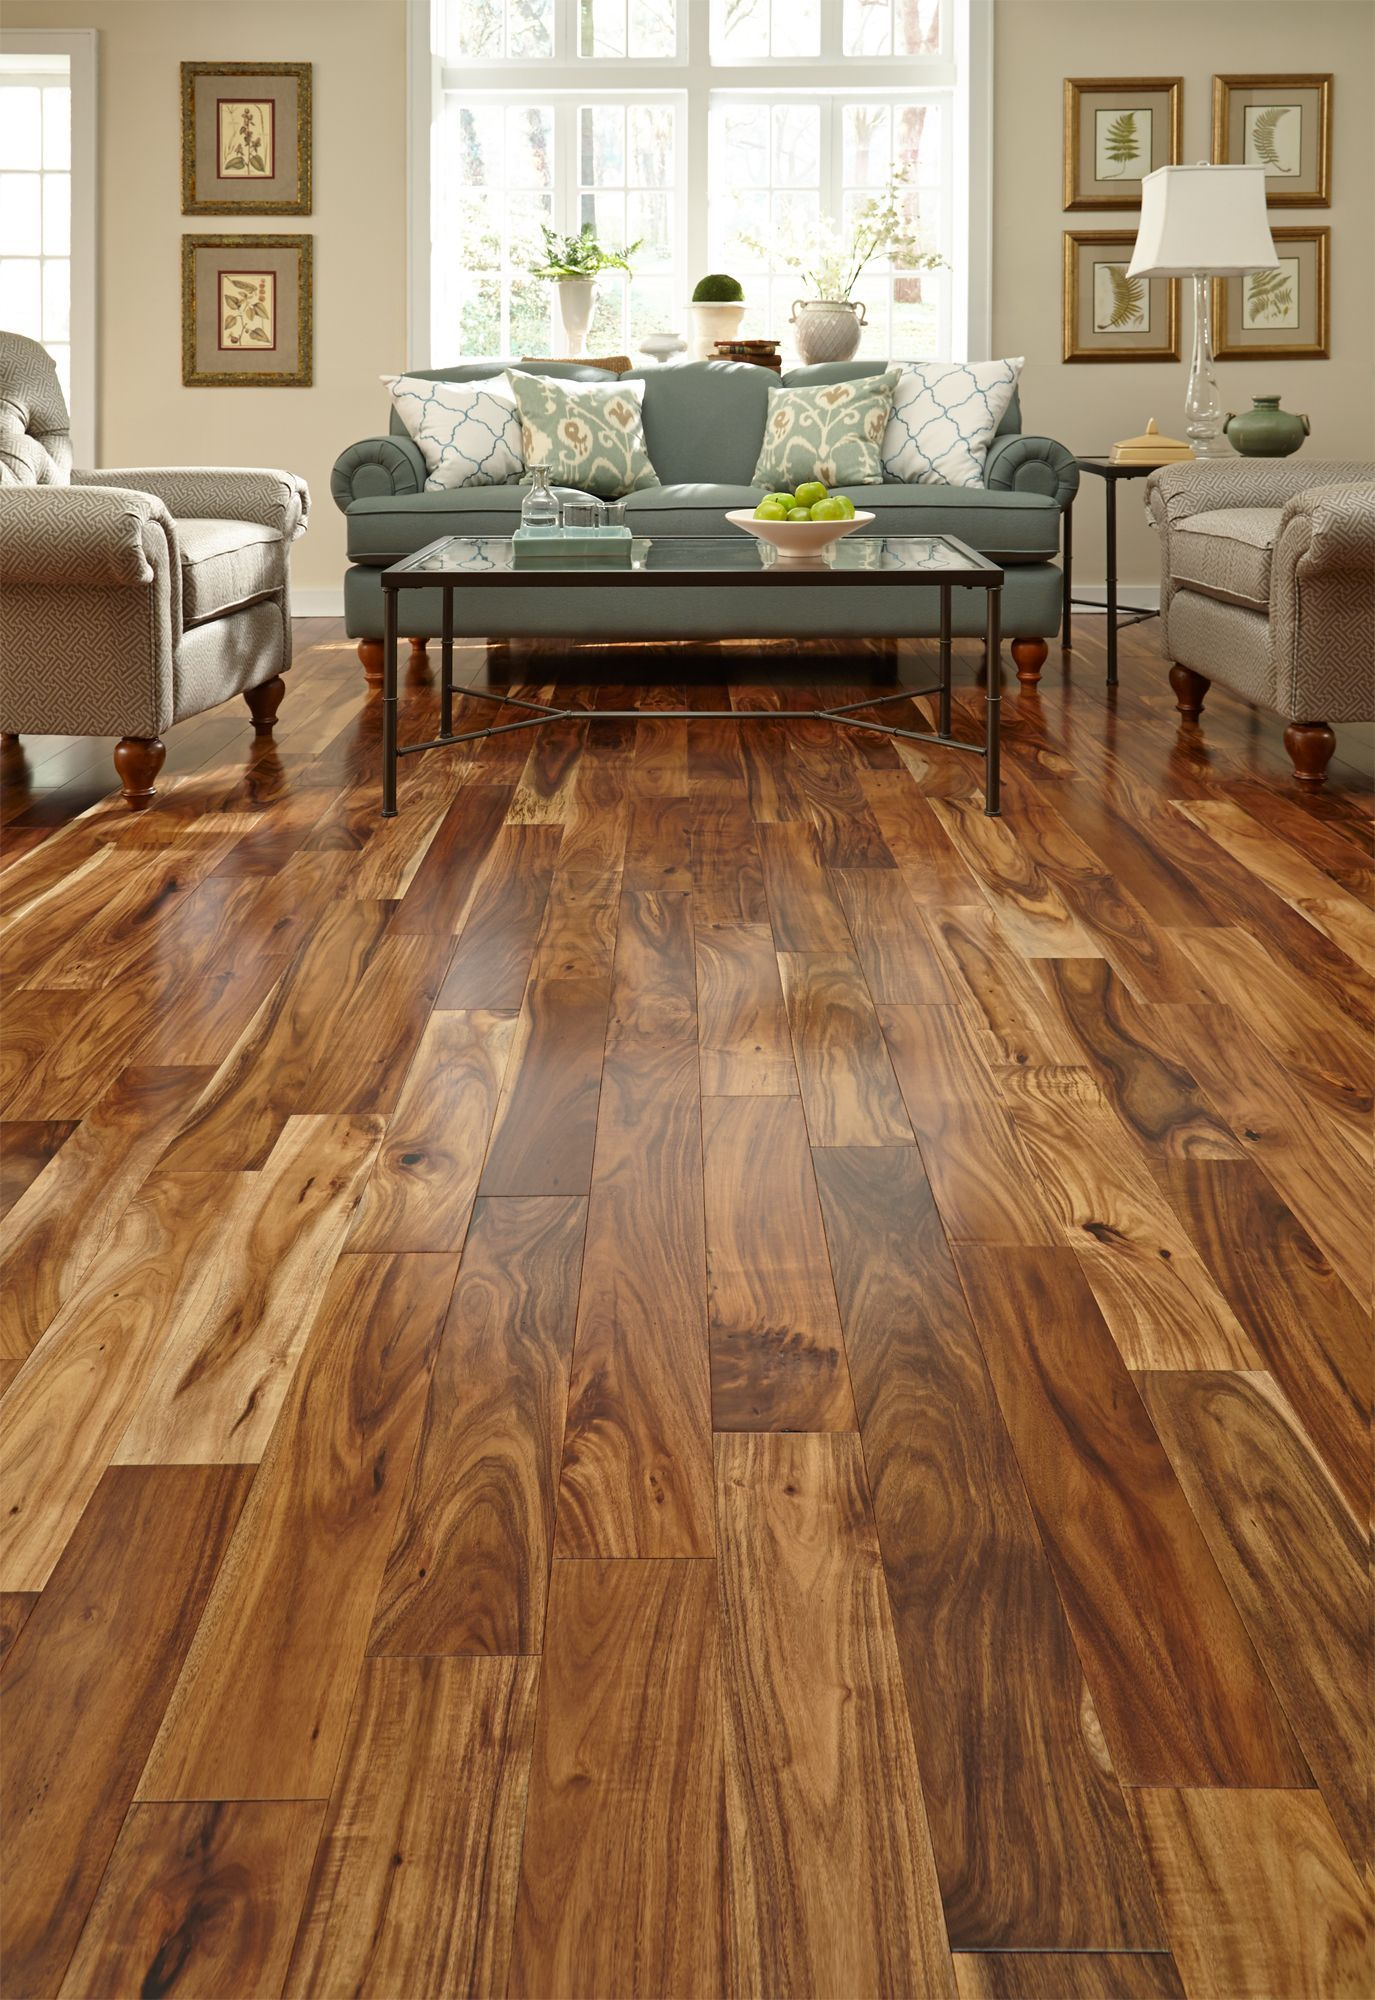 Hardwoodprojects acacia hardwood flooring hardwood floor colors diy flooring types of hardwood